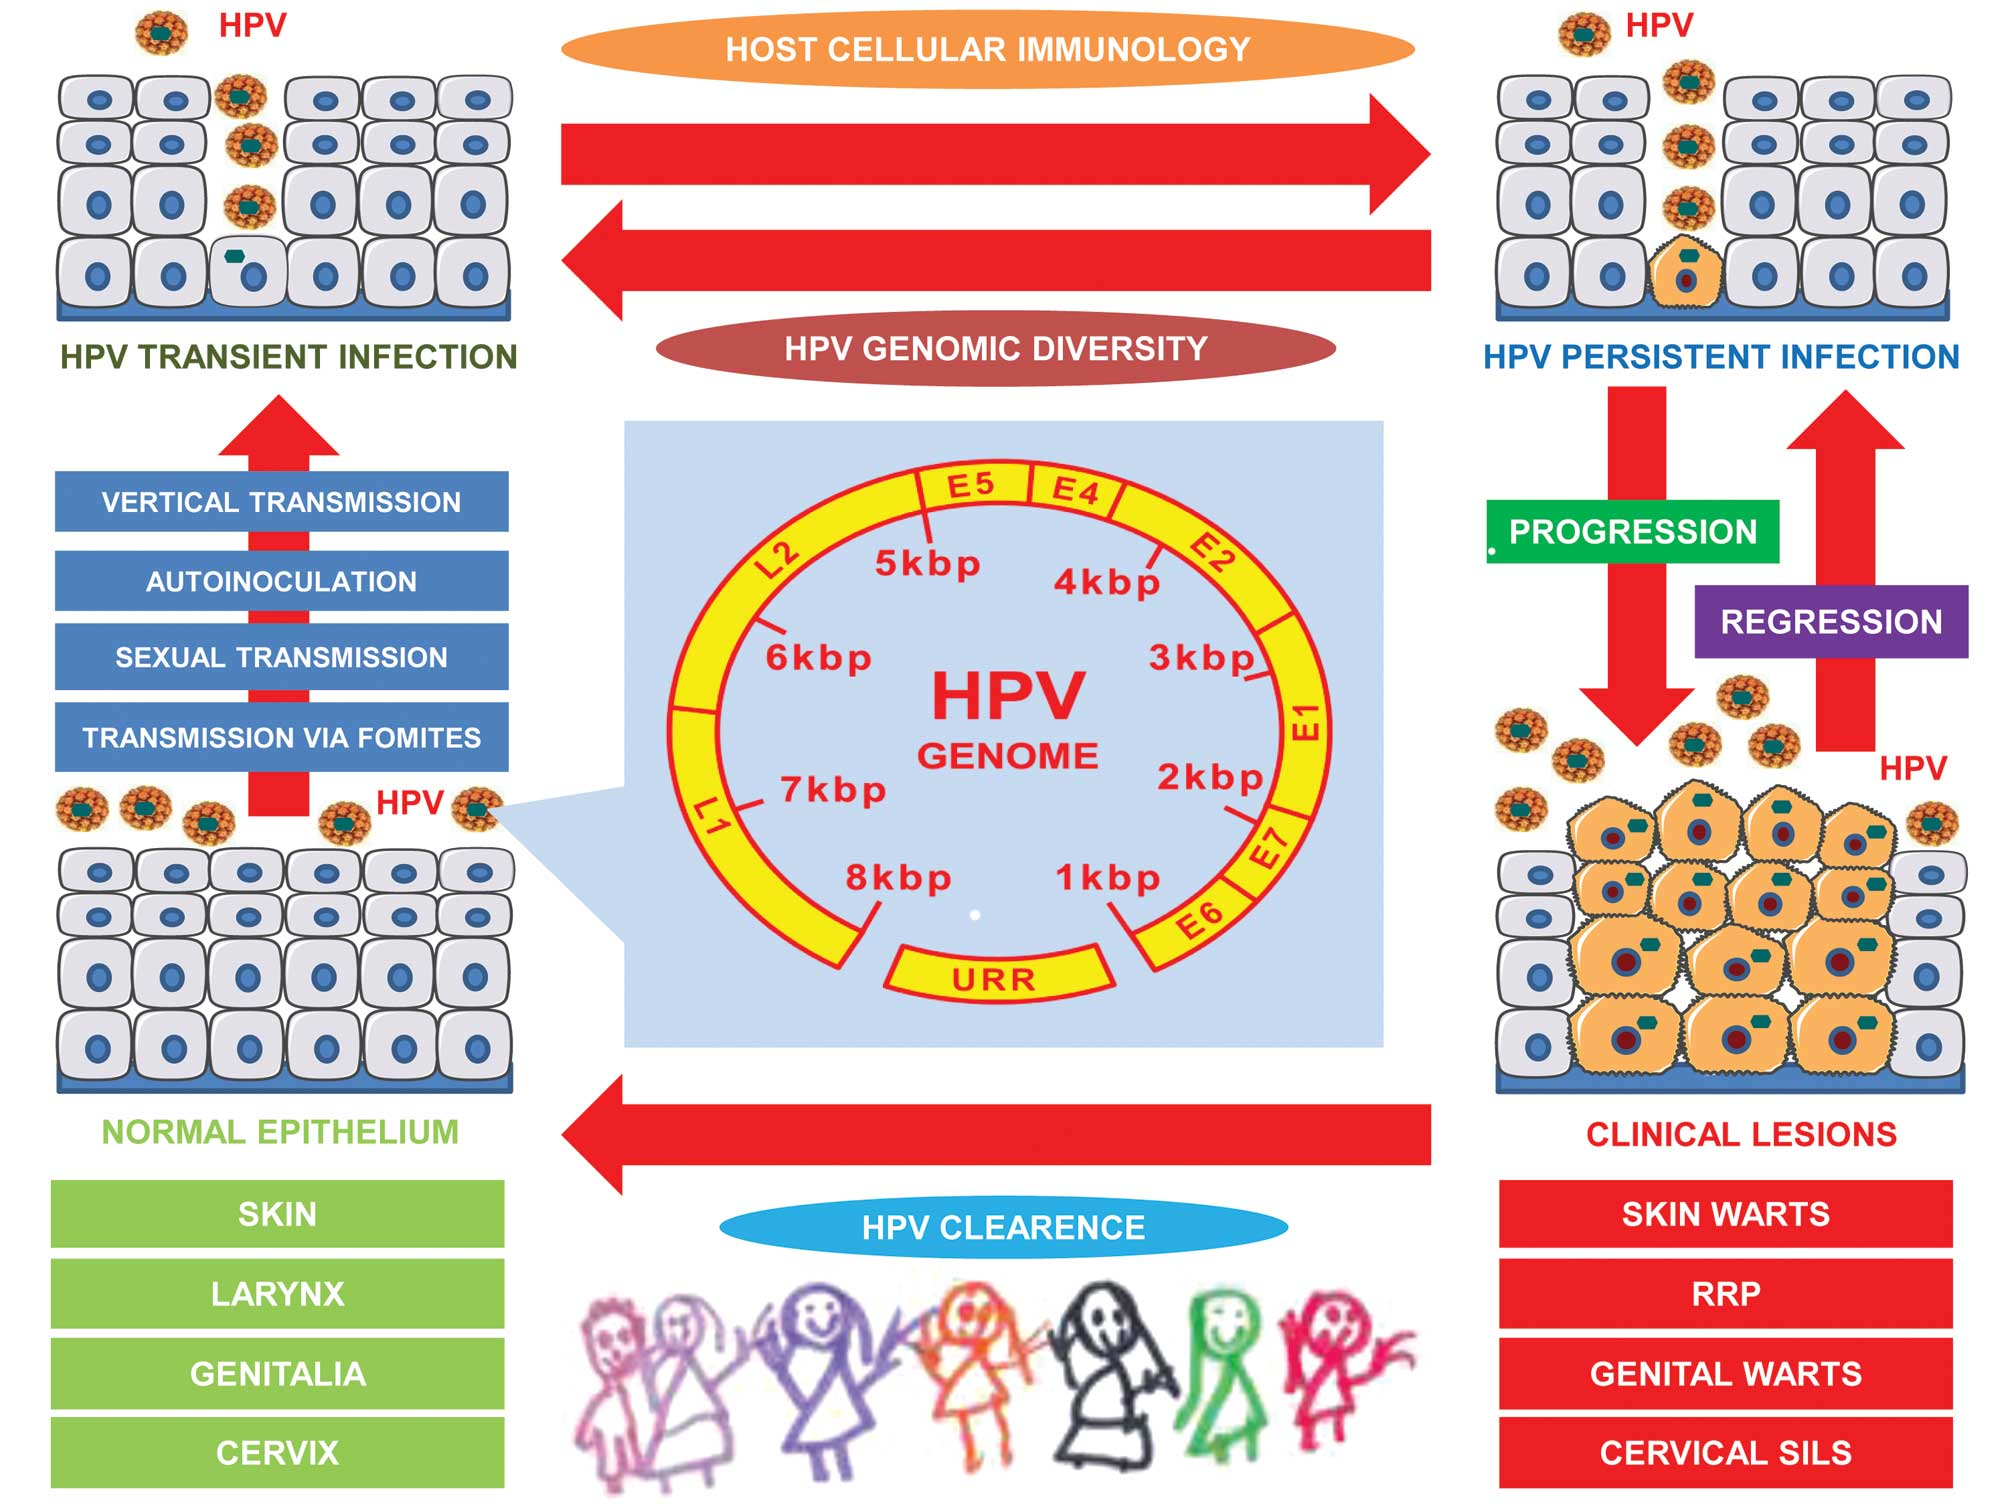 hpv positive meaning